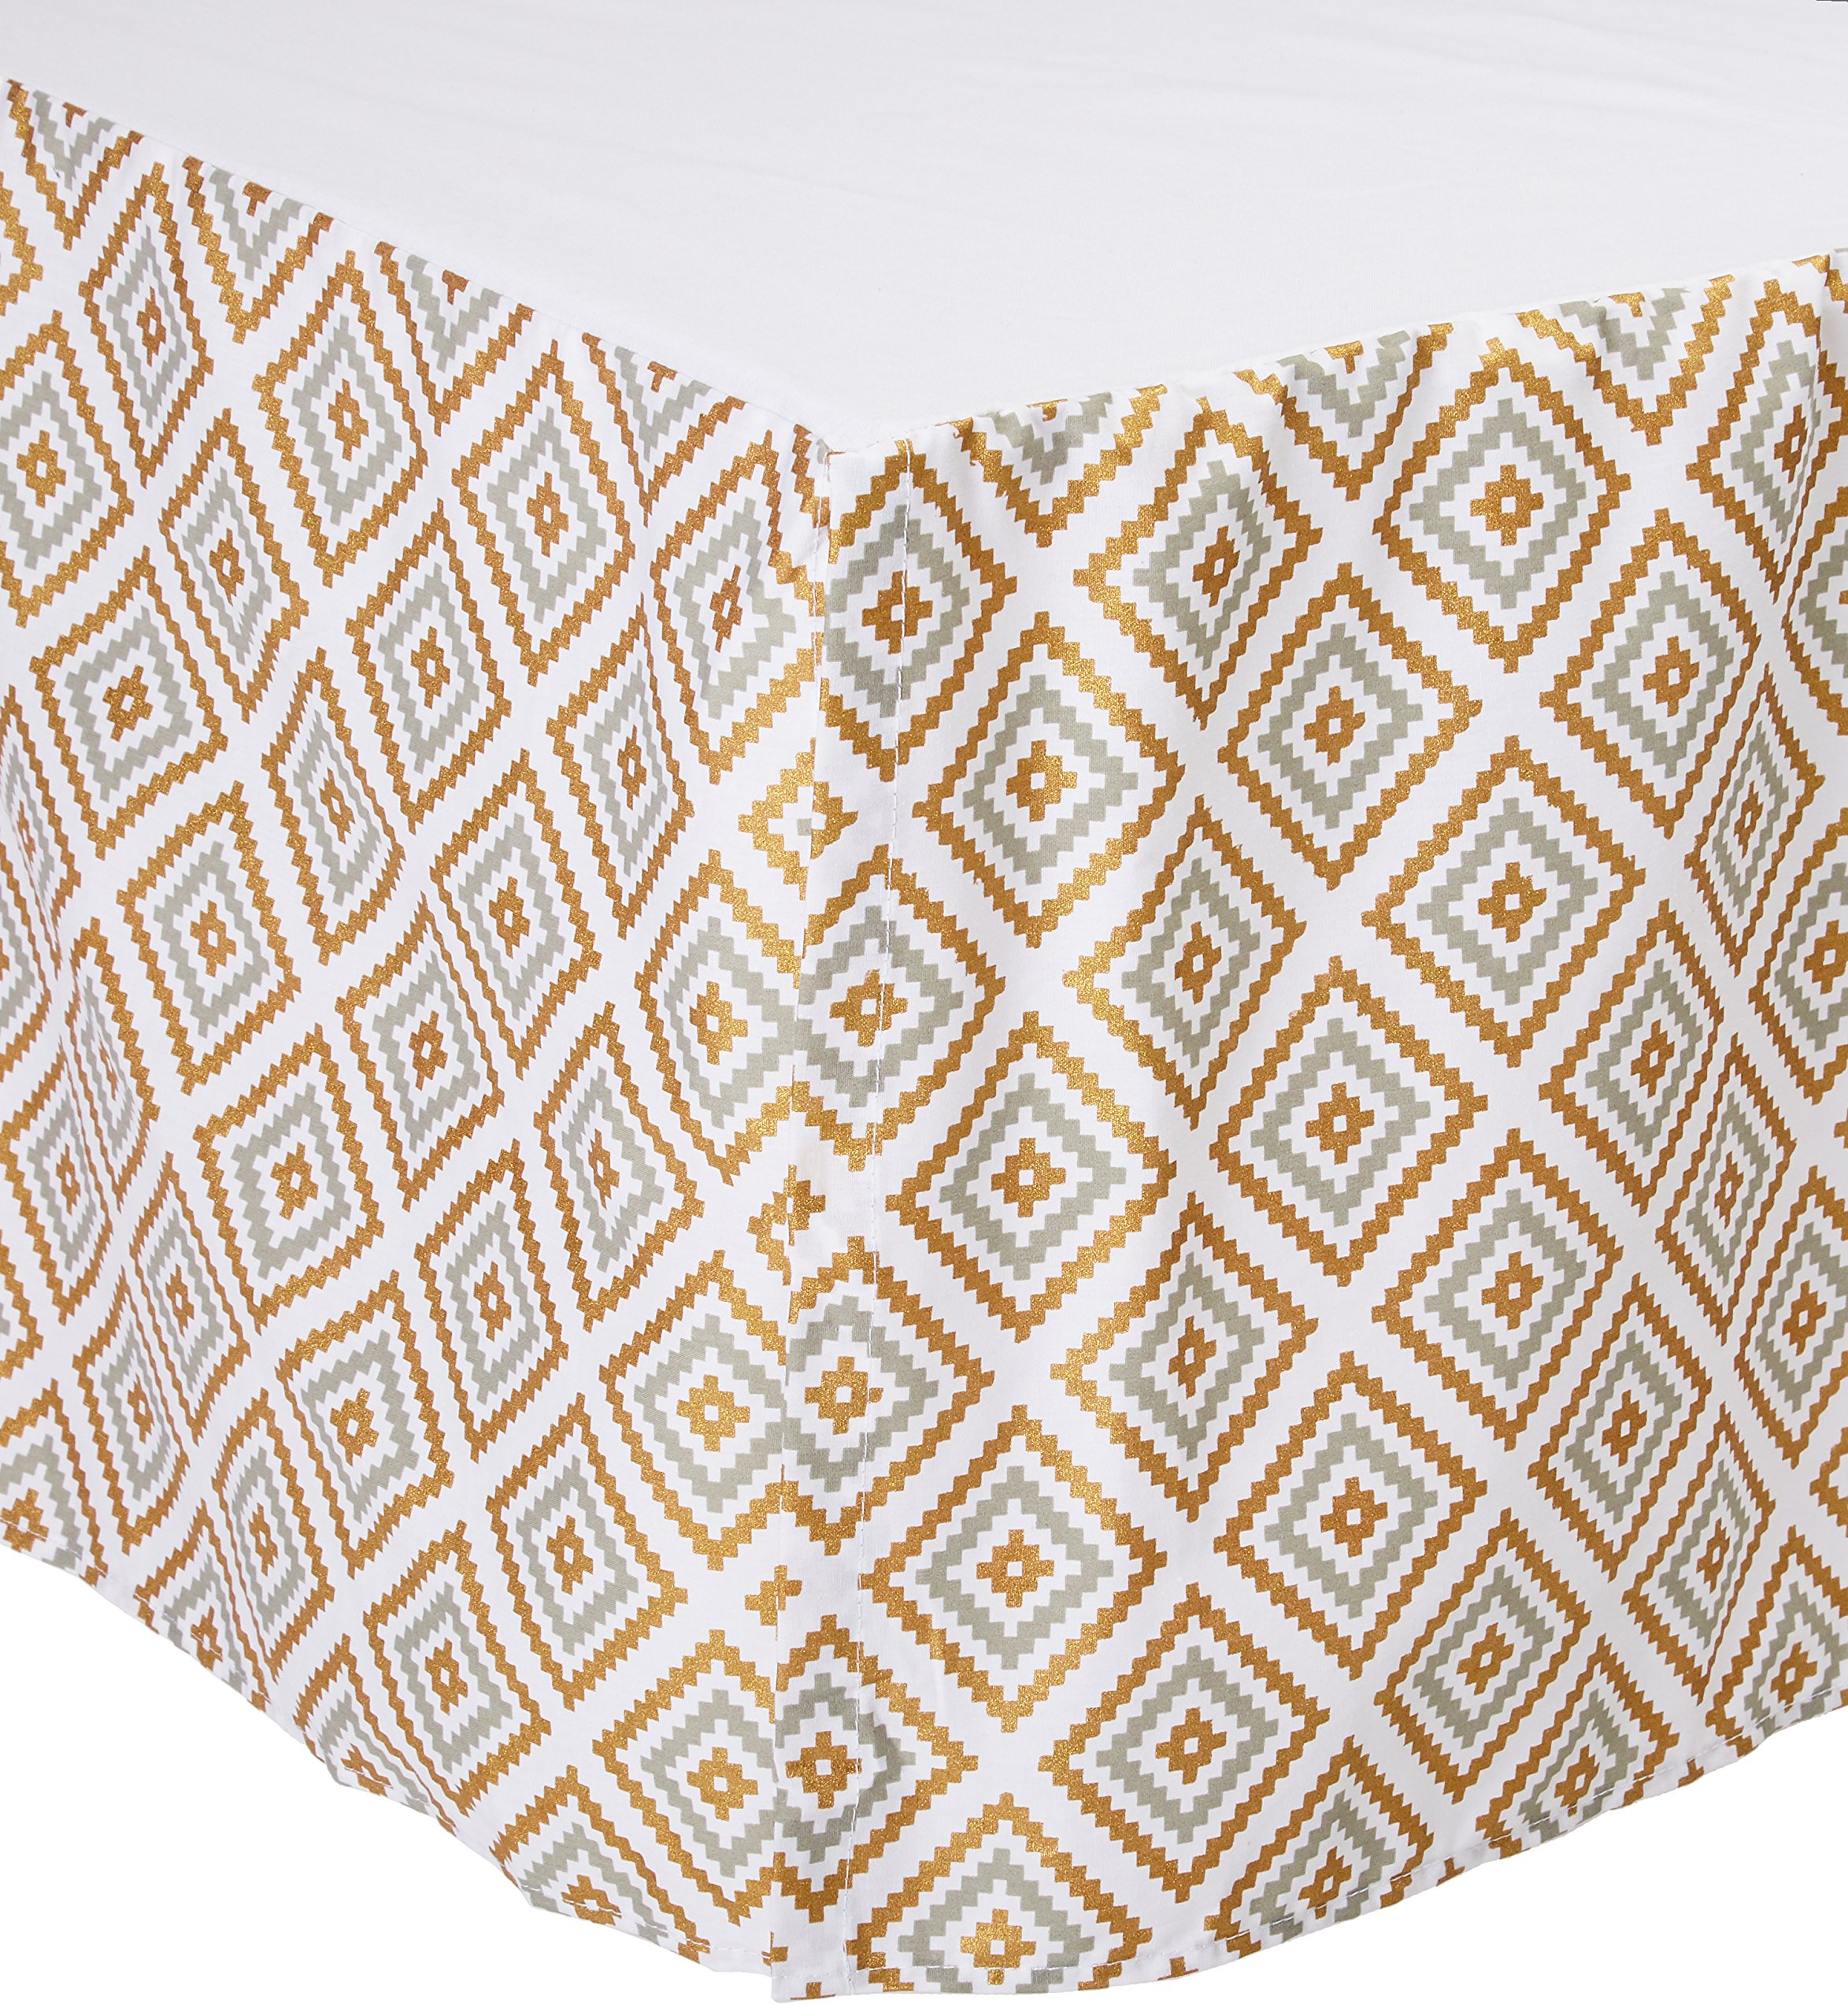 American Baby Company 100% Cotton Tailored Crib Skirt with Pleat, Sparkle Gold/Grey Kilim, for Boys and Girls